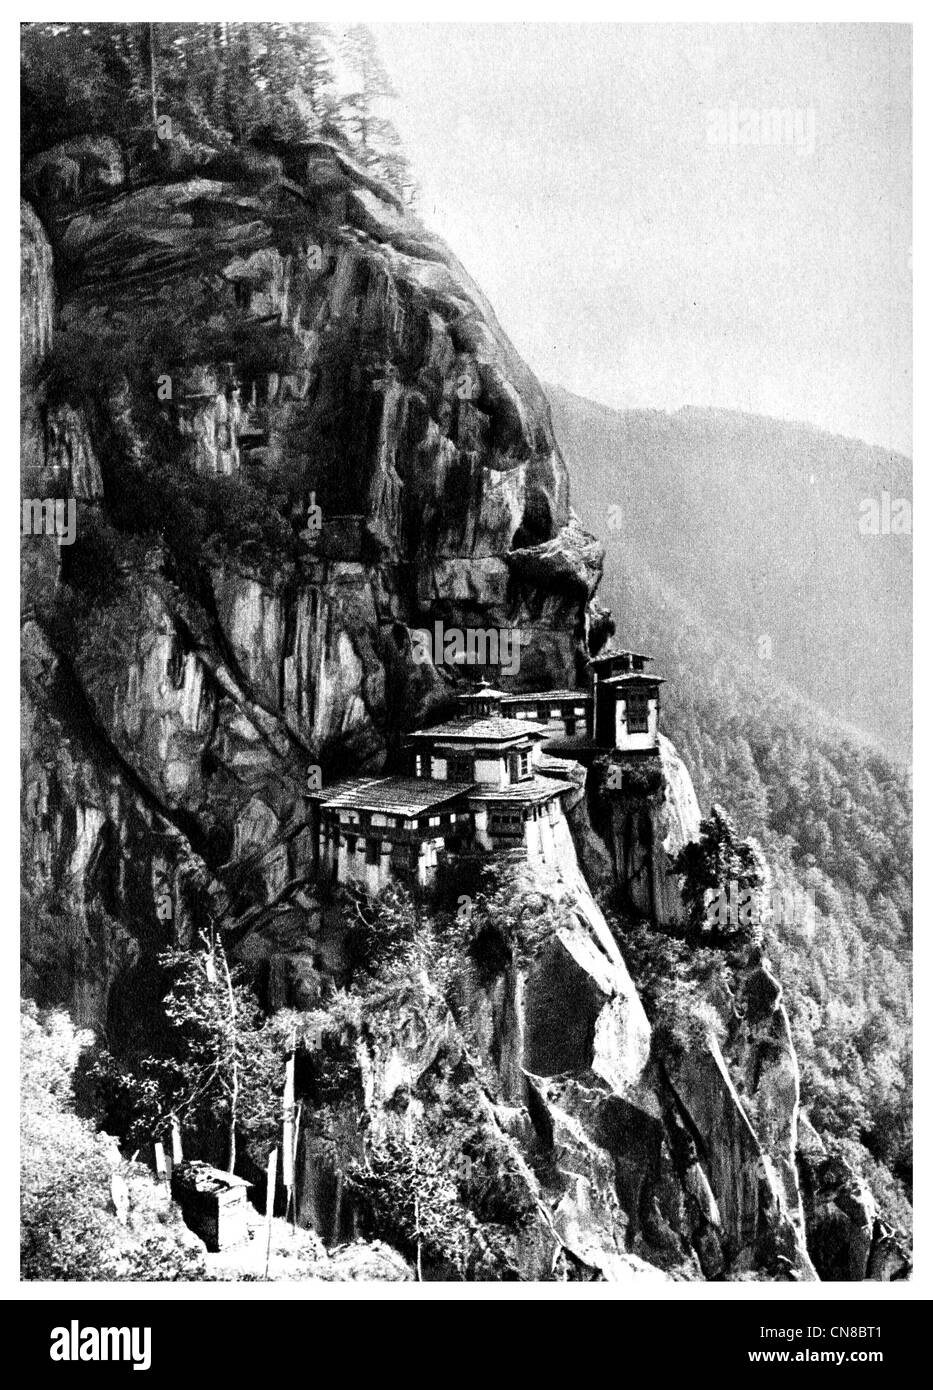 First published 1914 Paro tatsang monastery cliff bhutan tigers nest - Stock Image